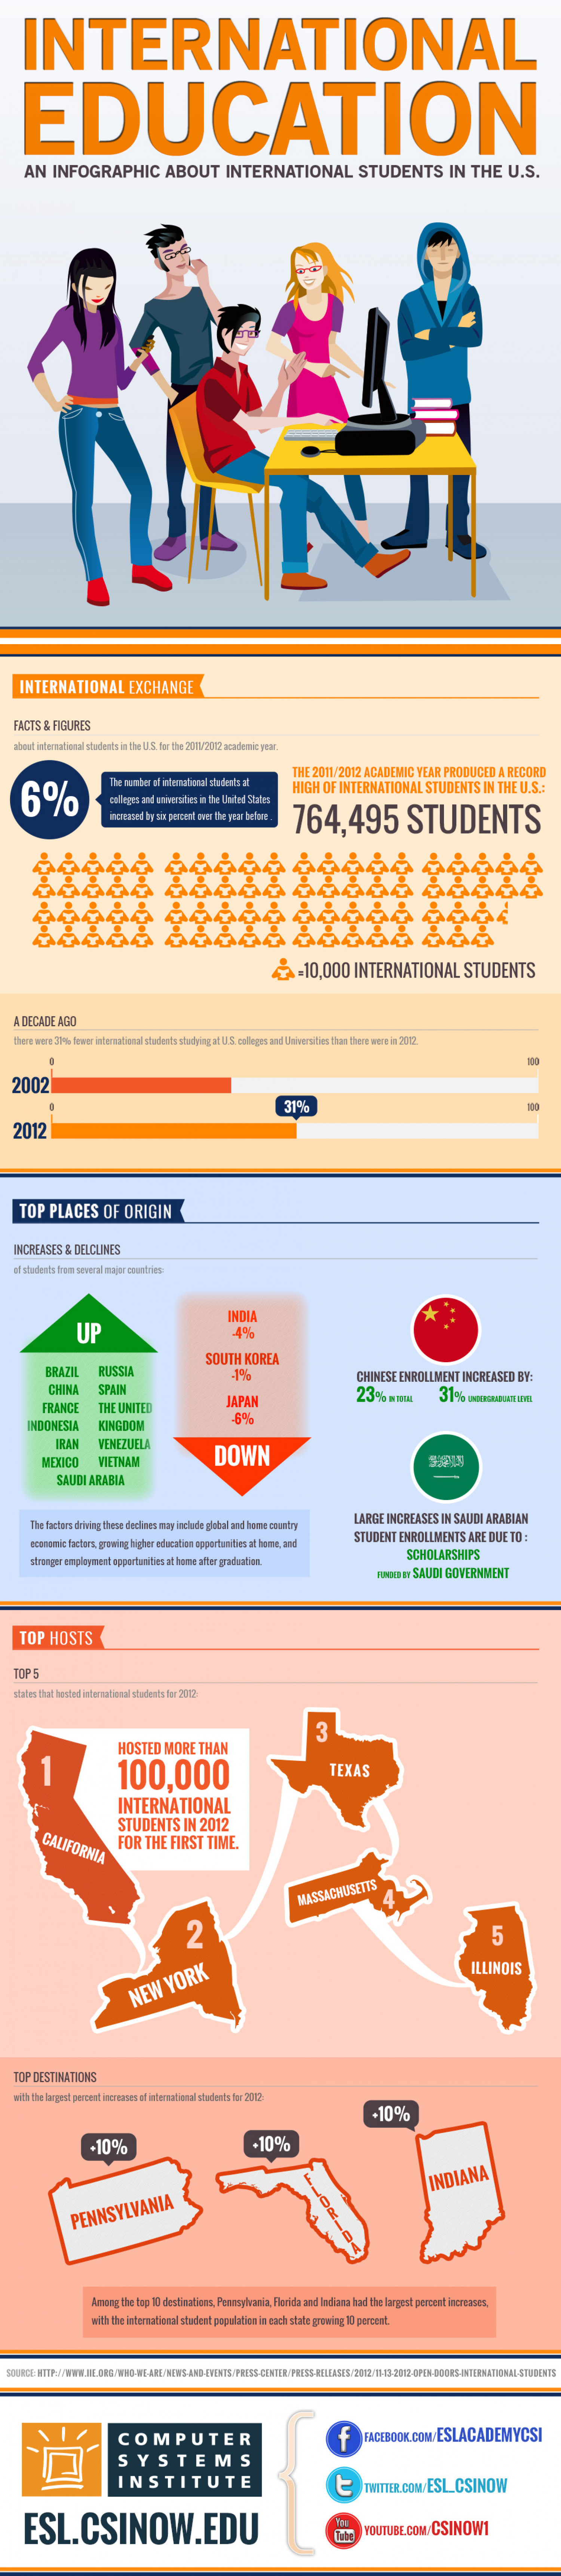 International Education: An Infographic About International Students in the US Infographic